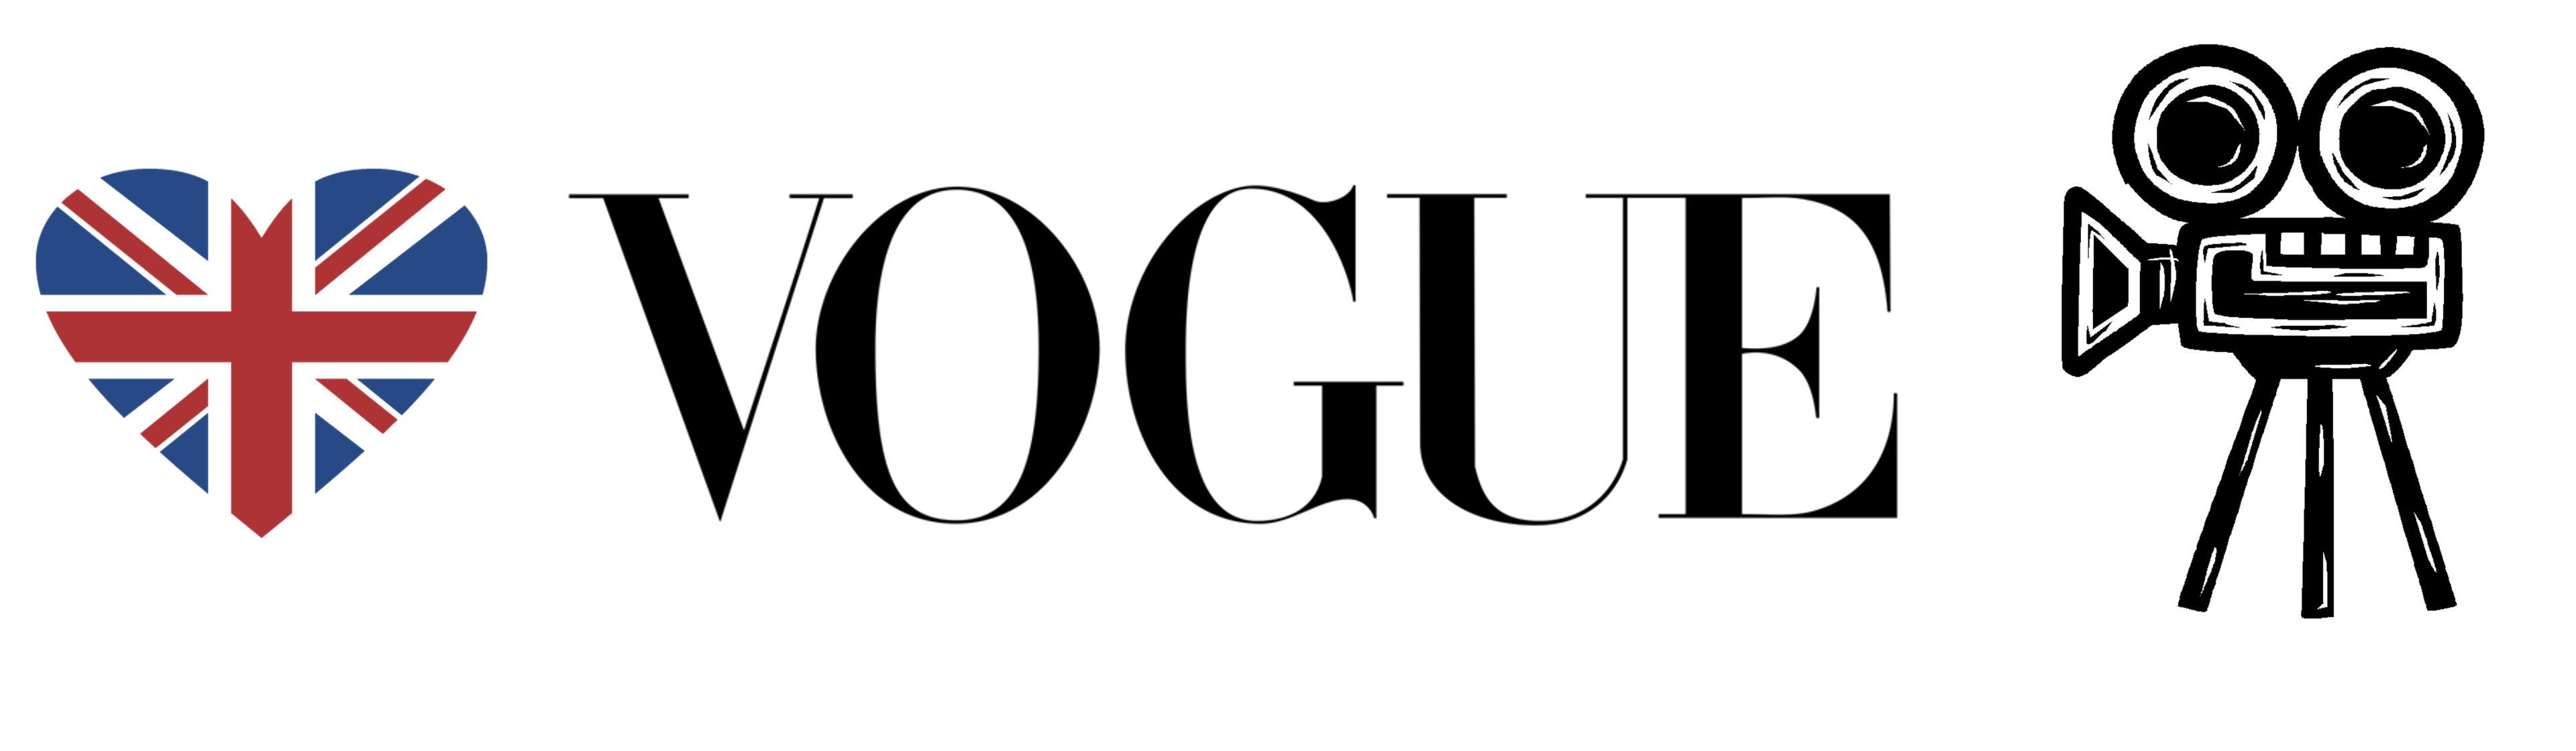 Edward Enninful Named as New Editor of British Vogue